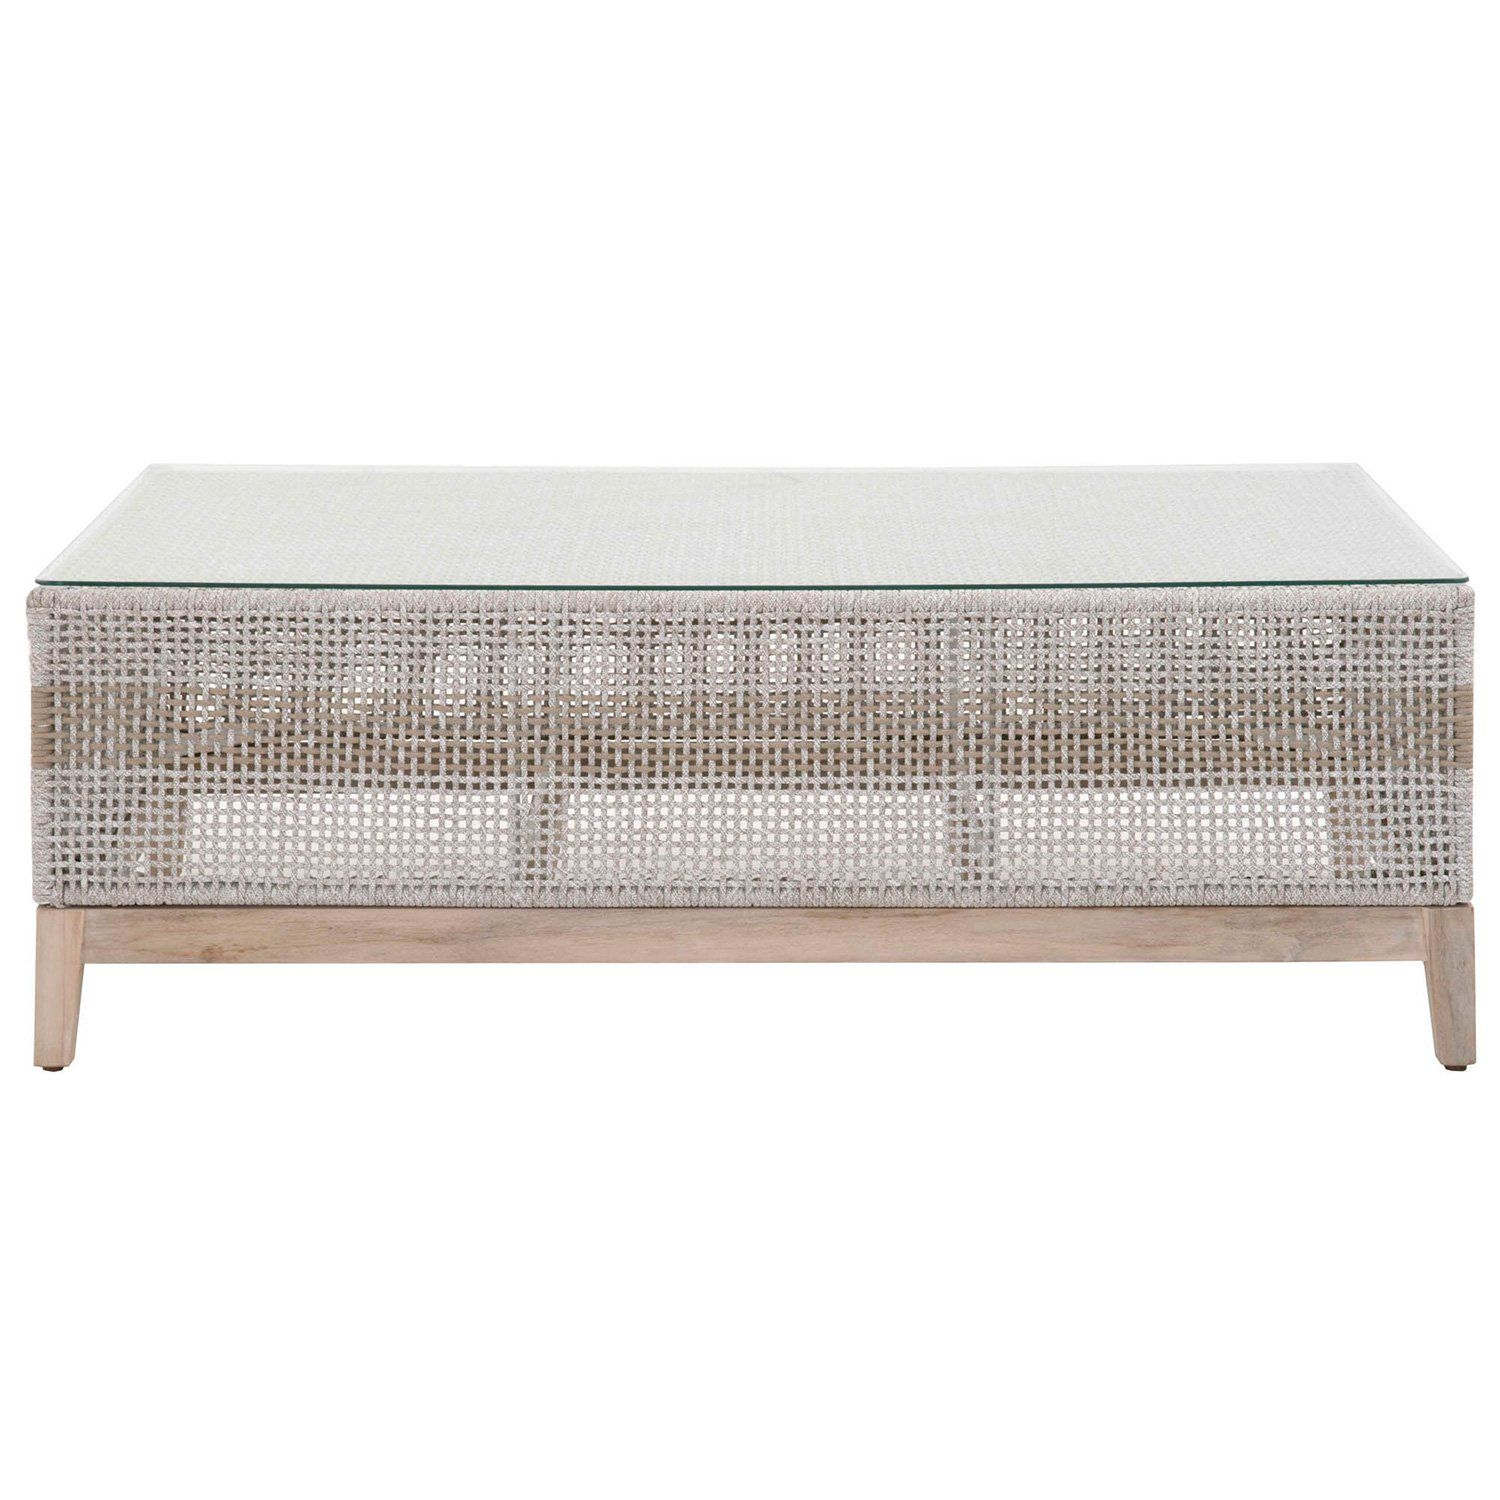 Tapestry Outdoor Coffee Table In 2021 Outdoor Coffee Tables Coffee Table Outdoor End Tables [ 1500 x 1500 Pixel ]